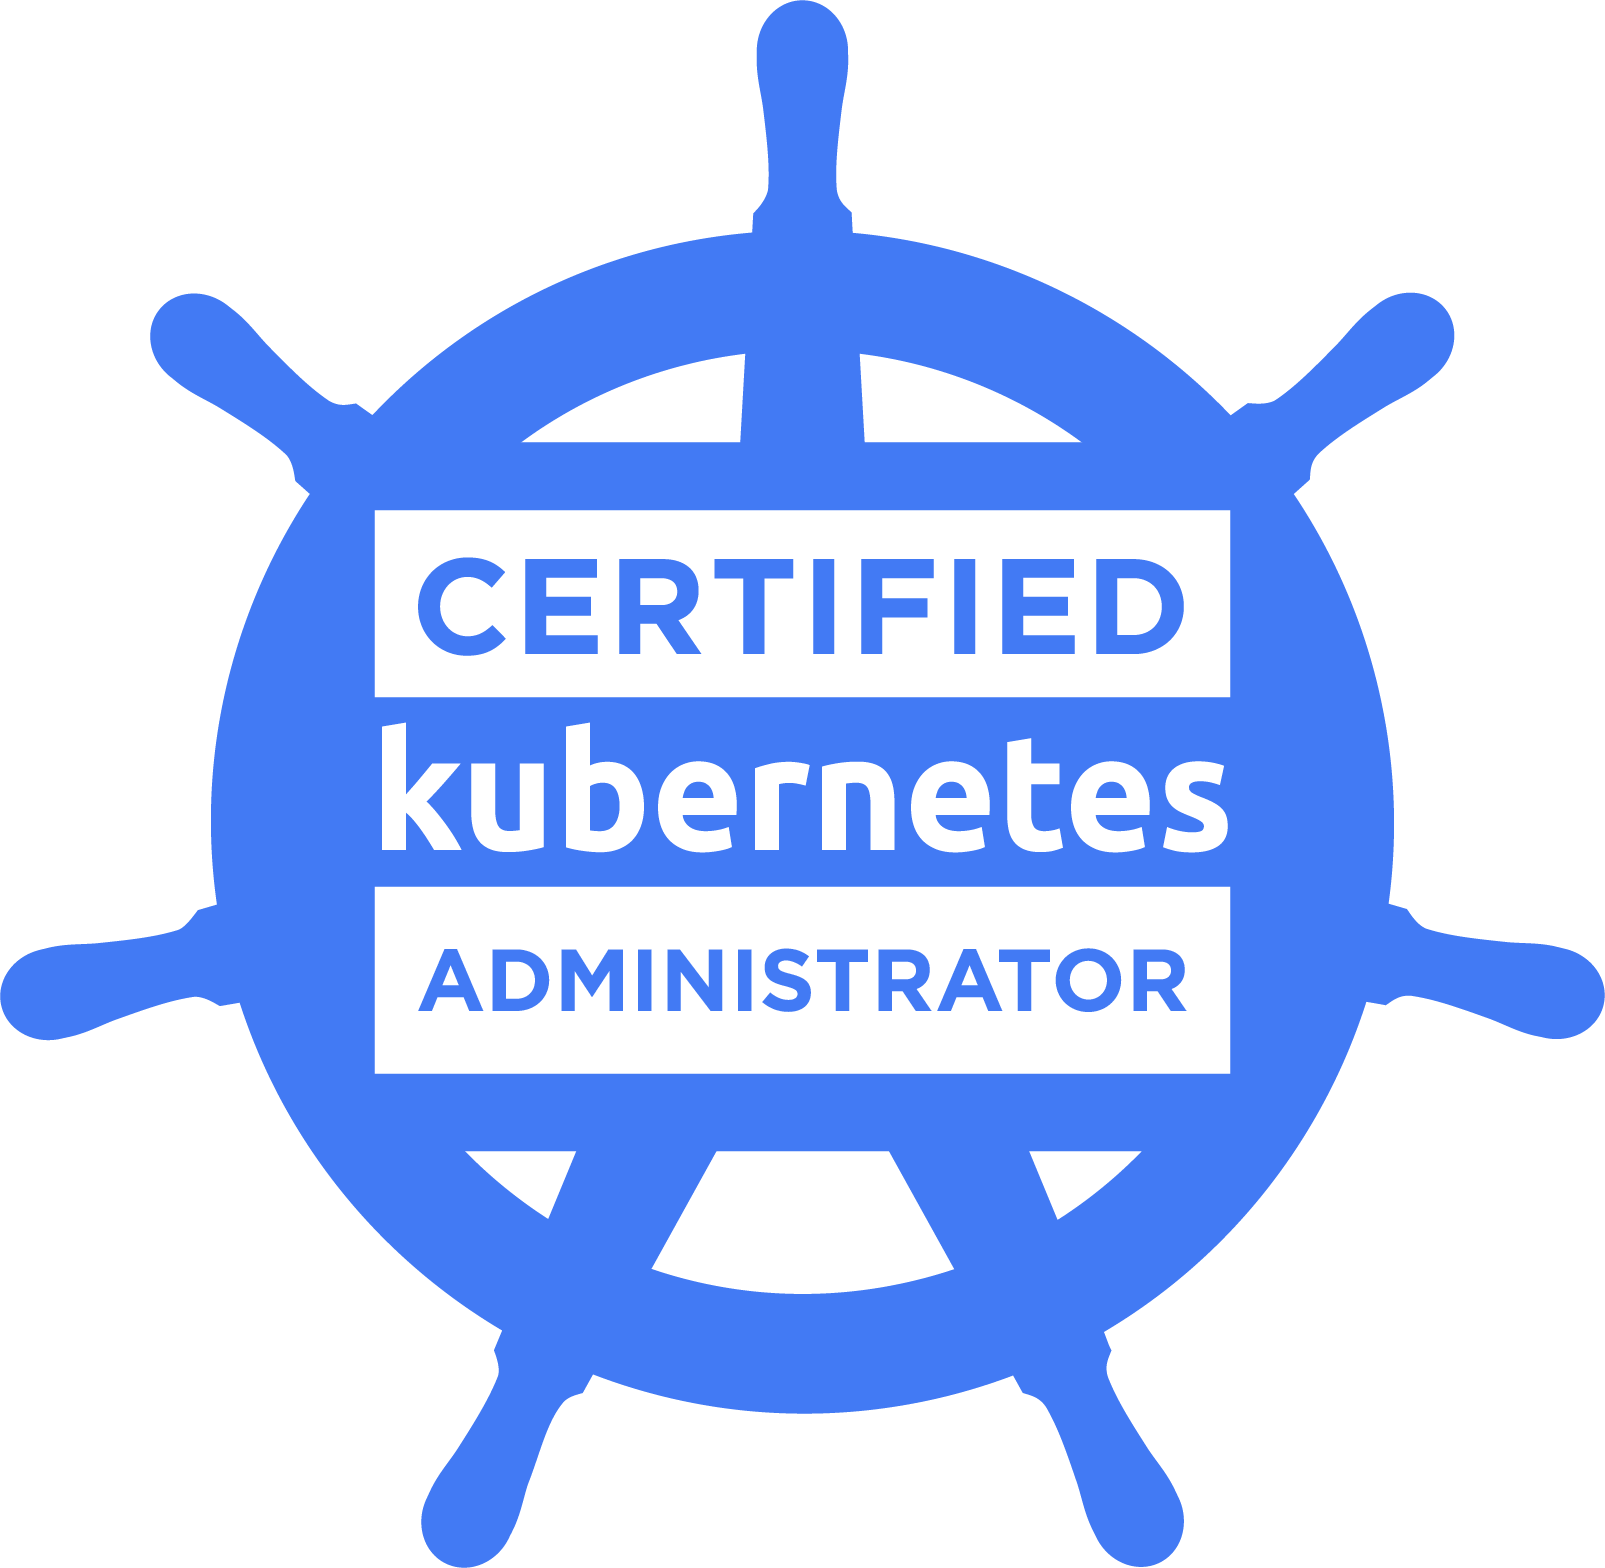 Certified Kubernetes Administrator (CKA) - Linux Foundation